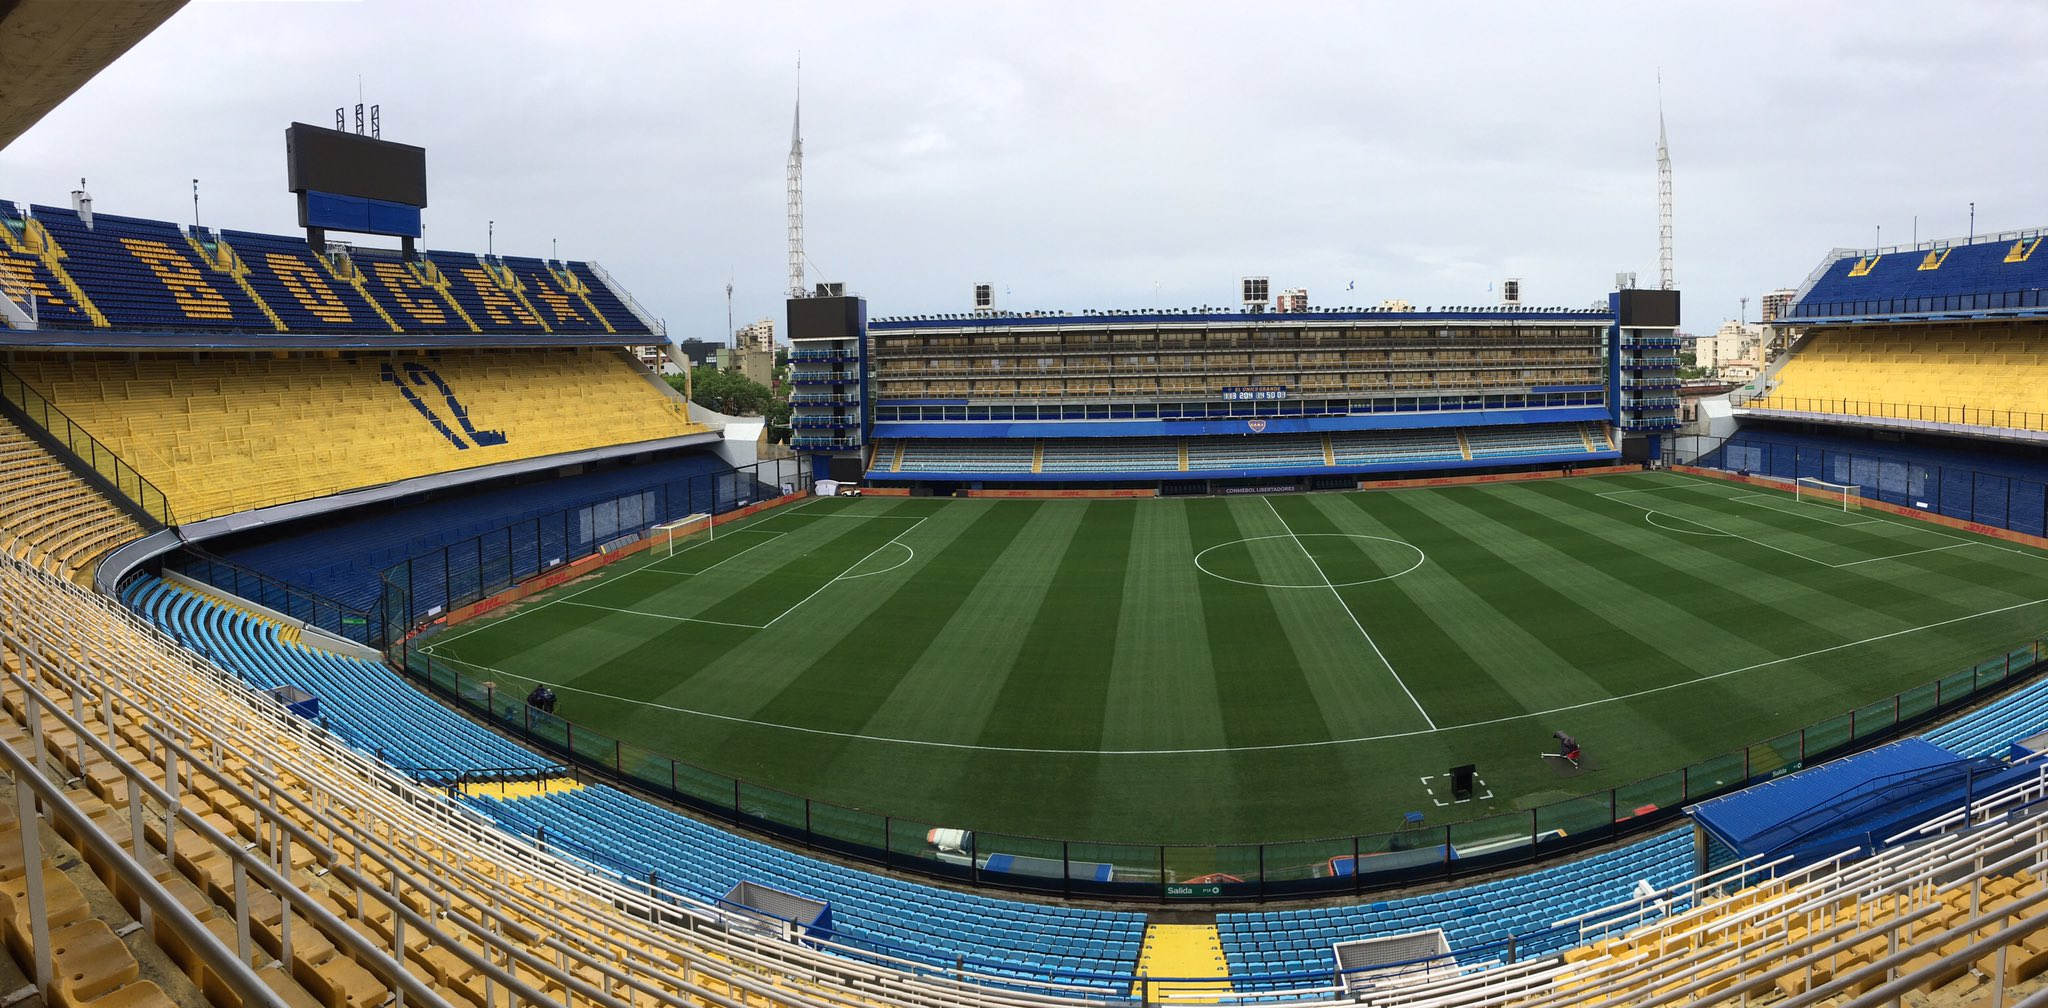 Bombonera, estádio do Boca Juniors